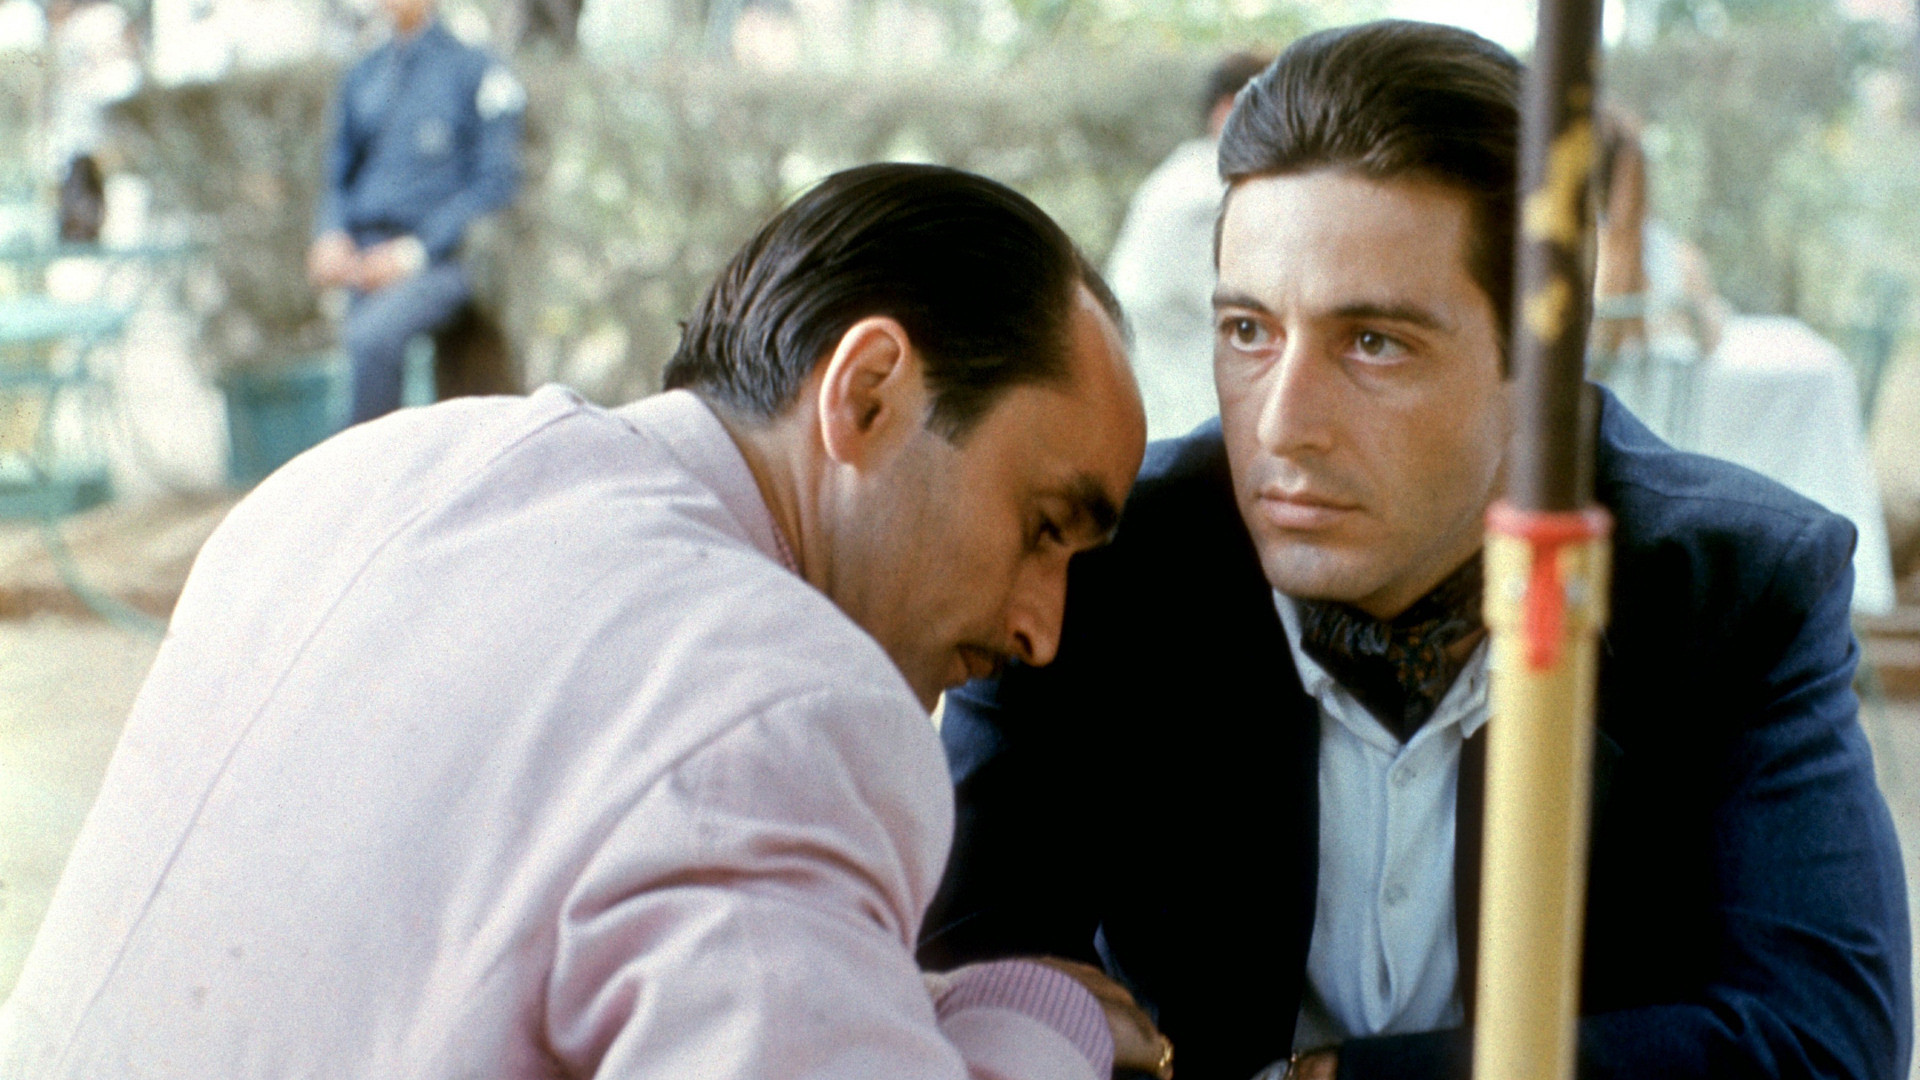 an analysis of the common themes related to international relations in the films the godfather black We will explore how this theme plays out in the plot, briefly analyze some key quotes about it, as well as do some character analysis and broader analysis of topics surrounding the american dream.